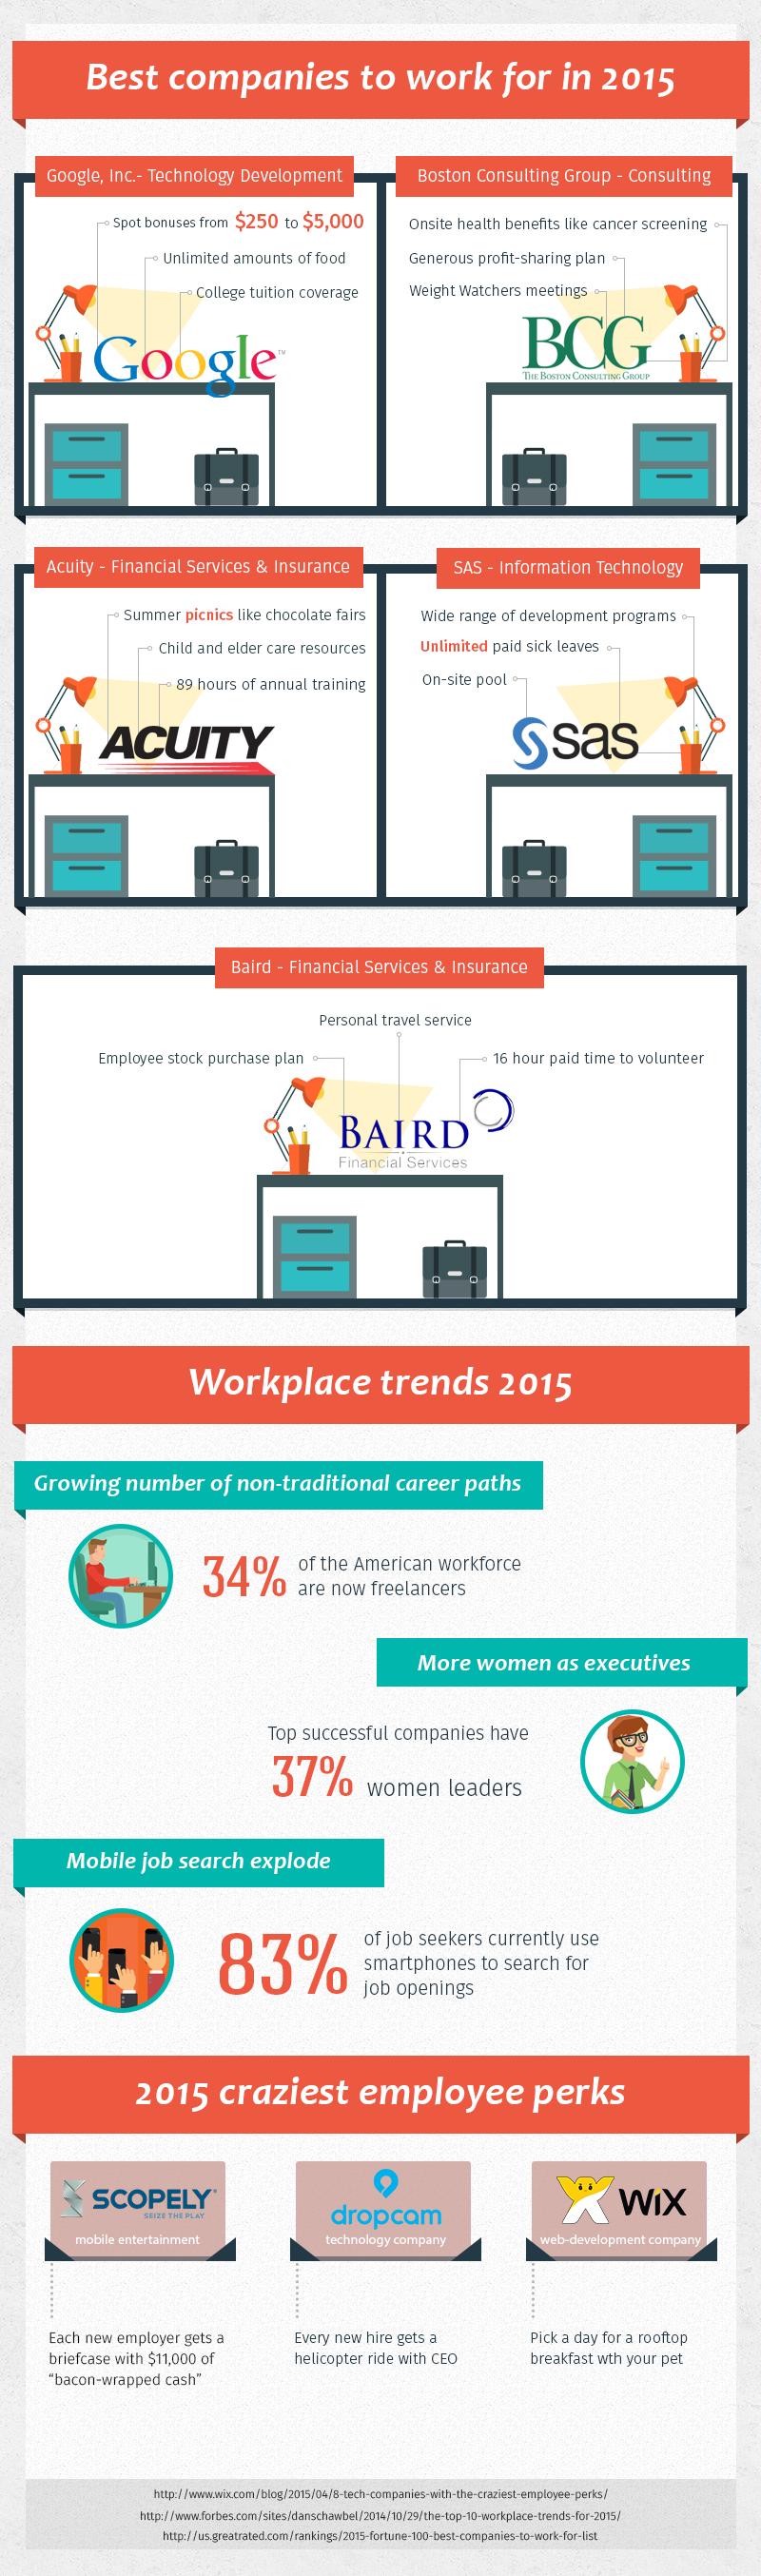 Best Companies To Work For In 2015